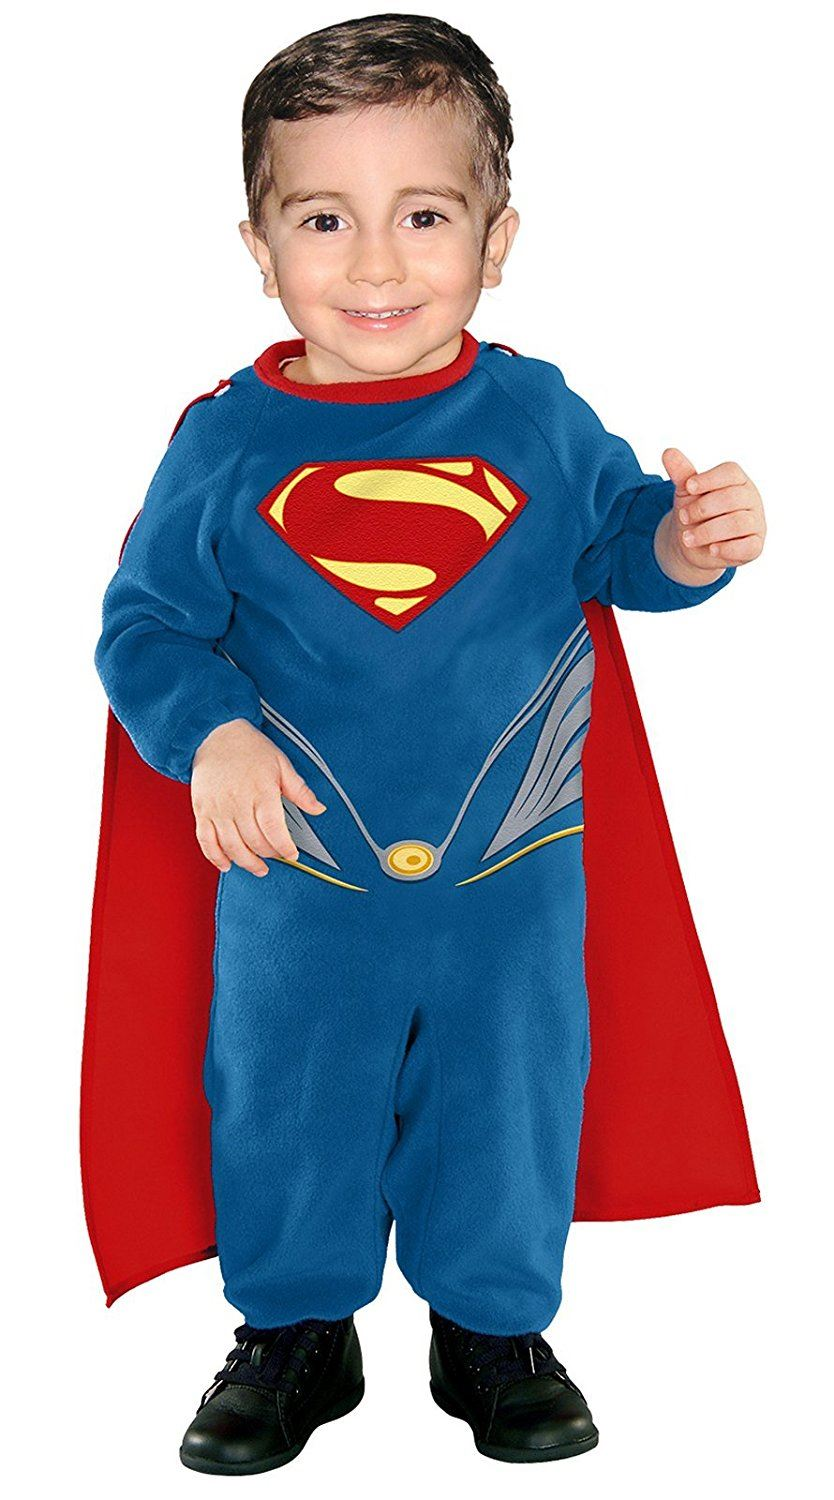 4c24b0fc9 ... Kids Superman Romper Toddler Costume. Click here to view Large Image